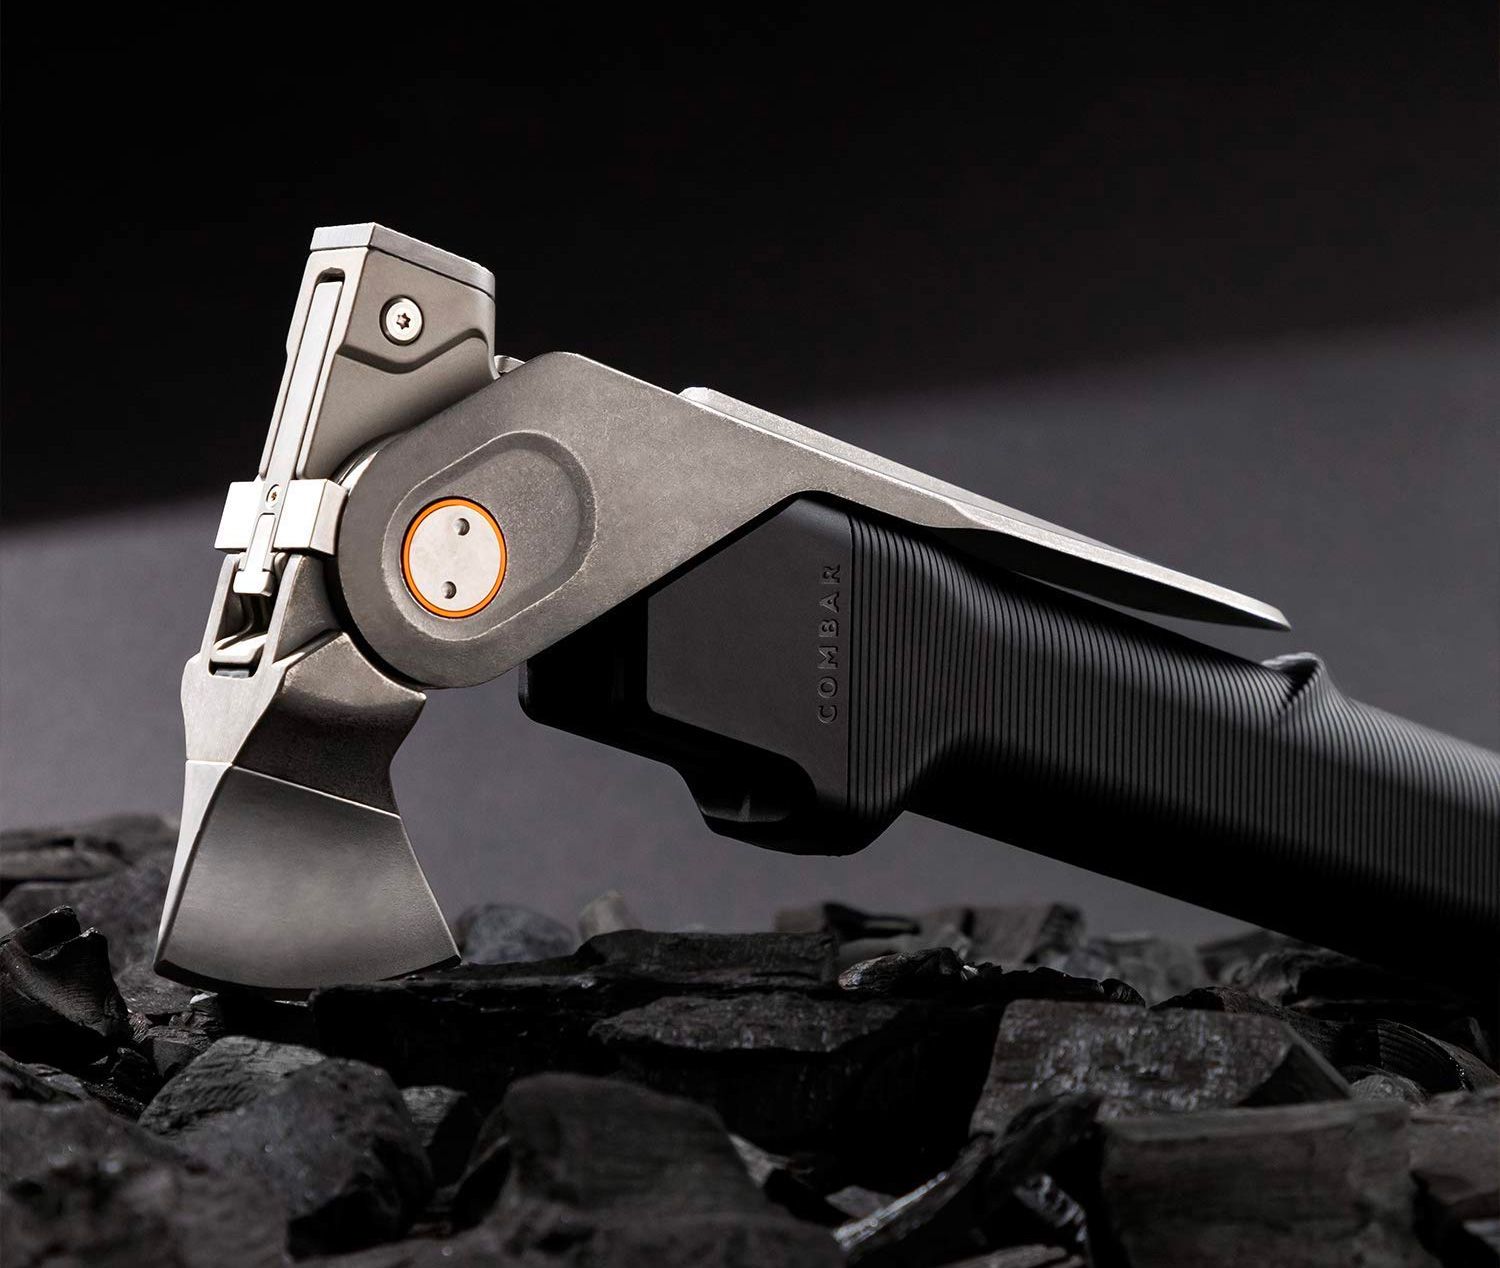 Aclim8's COMBAR Pro is a Rugged EDC Multitool at werd.com